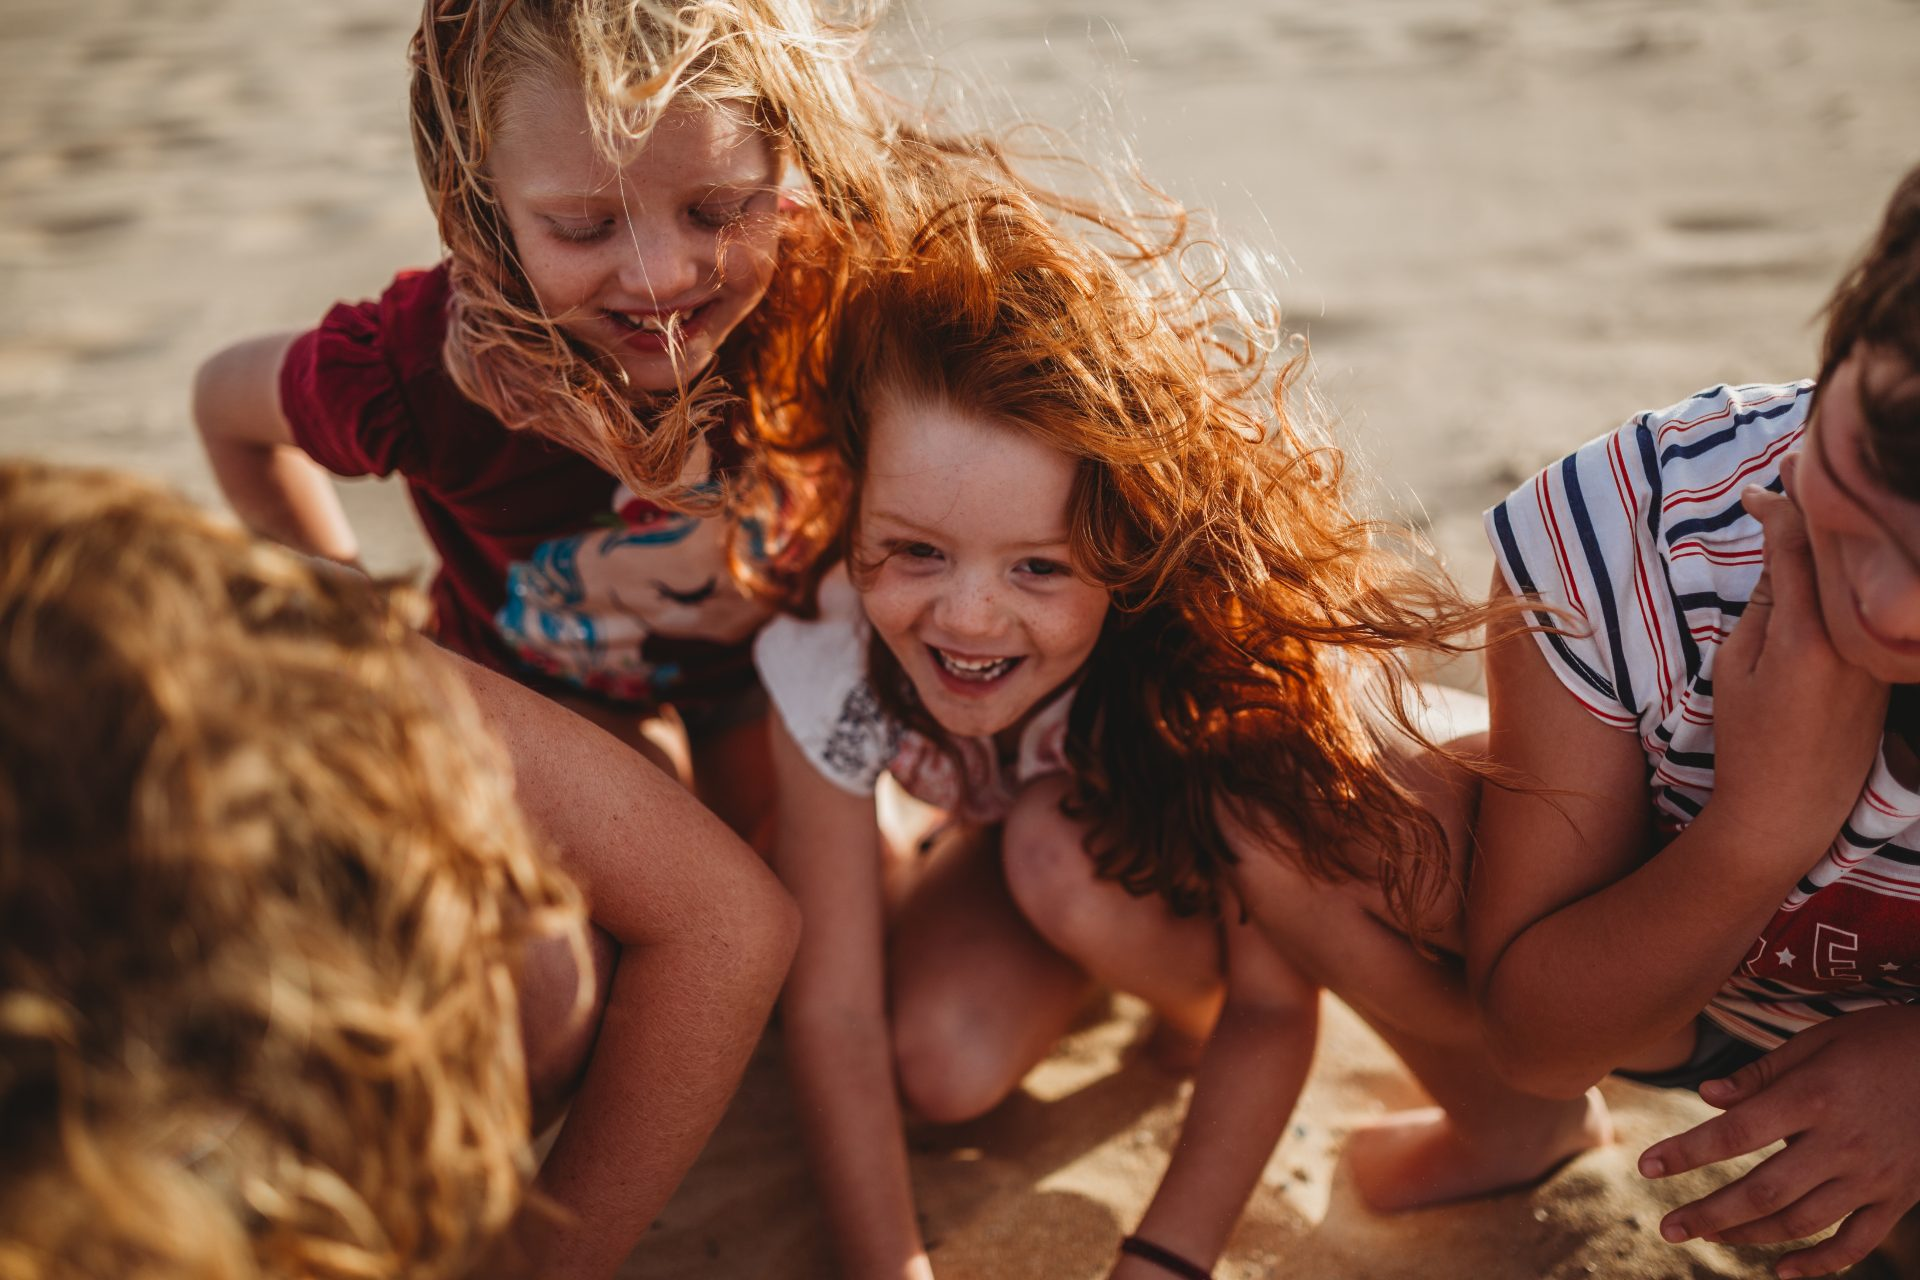 Two girls crouched down at the beach, smiling, with windy hair